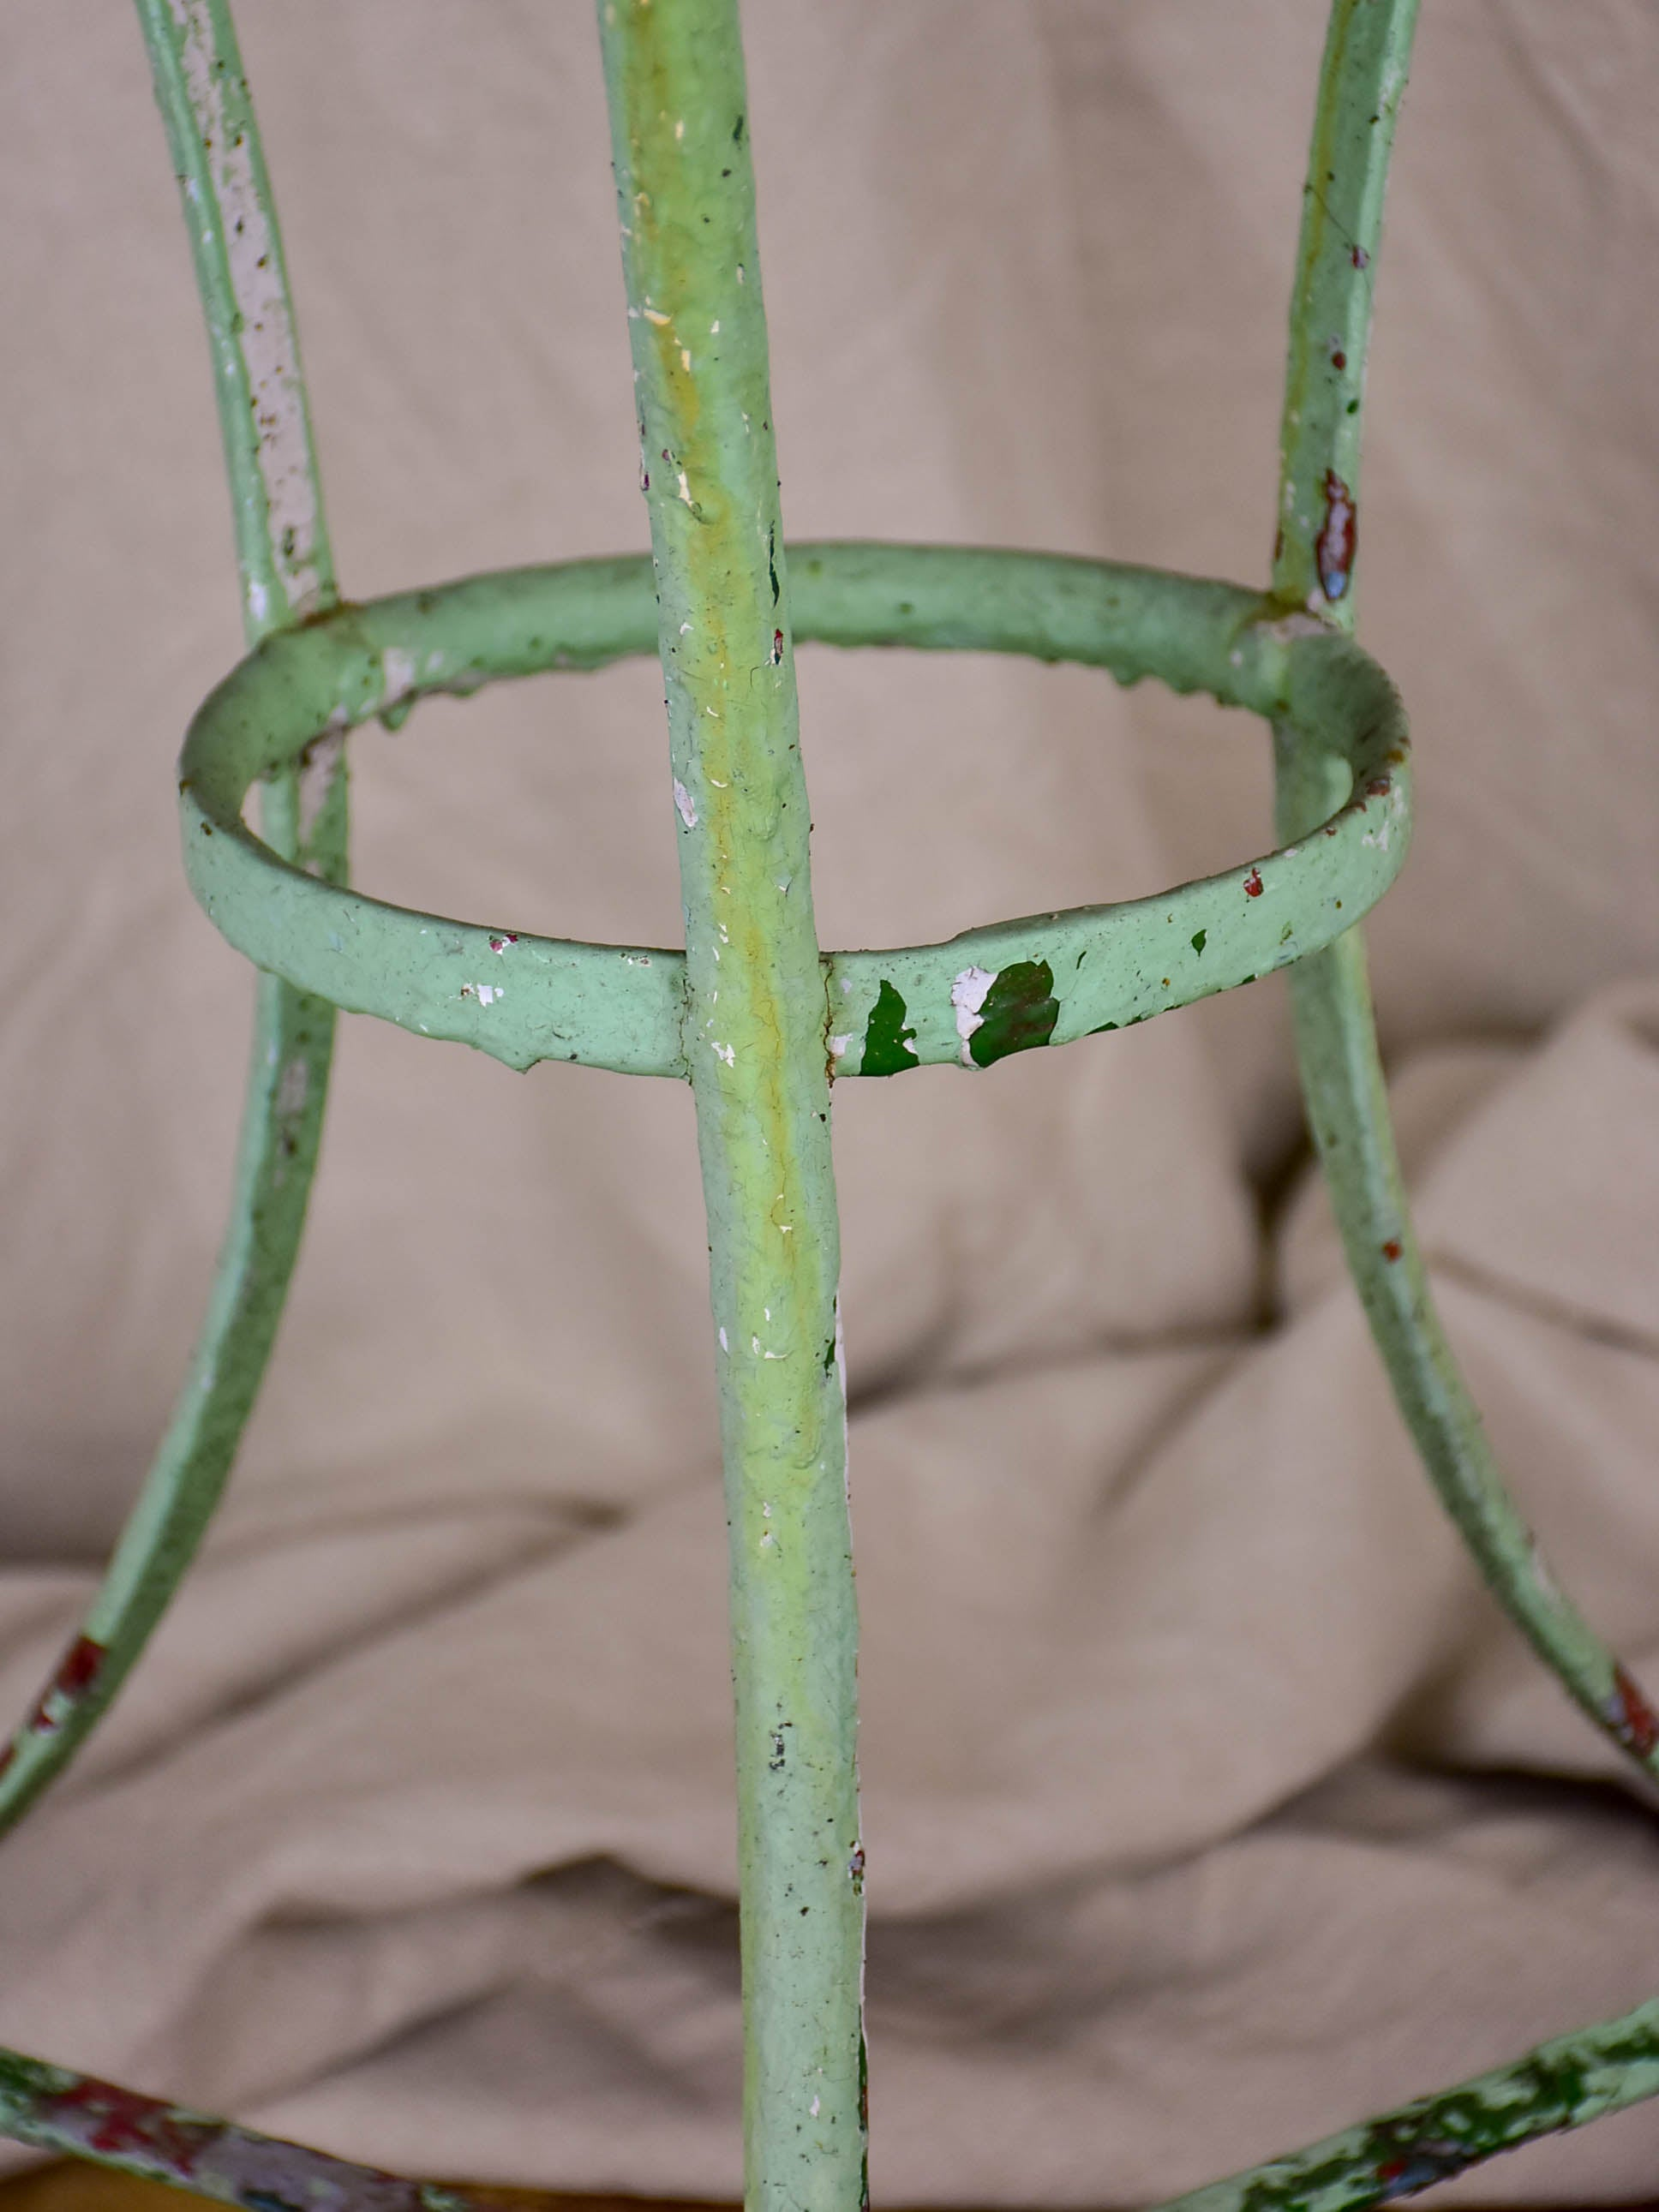 Antique French garden table with green patina